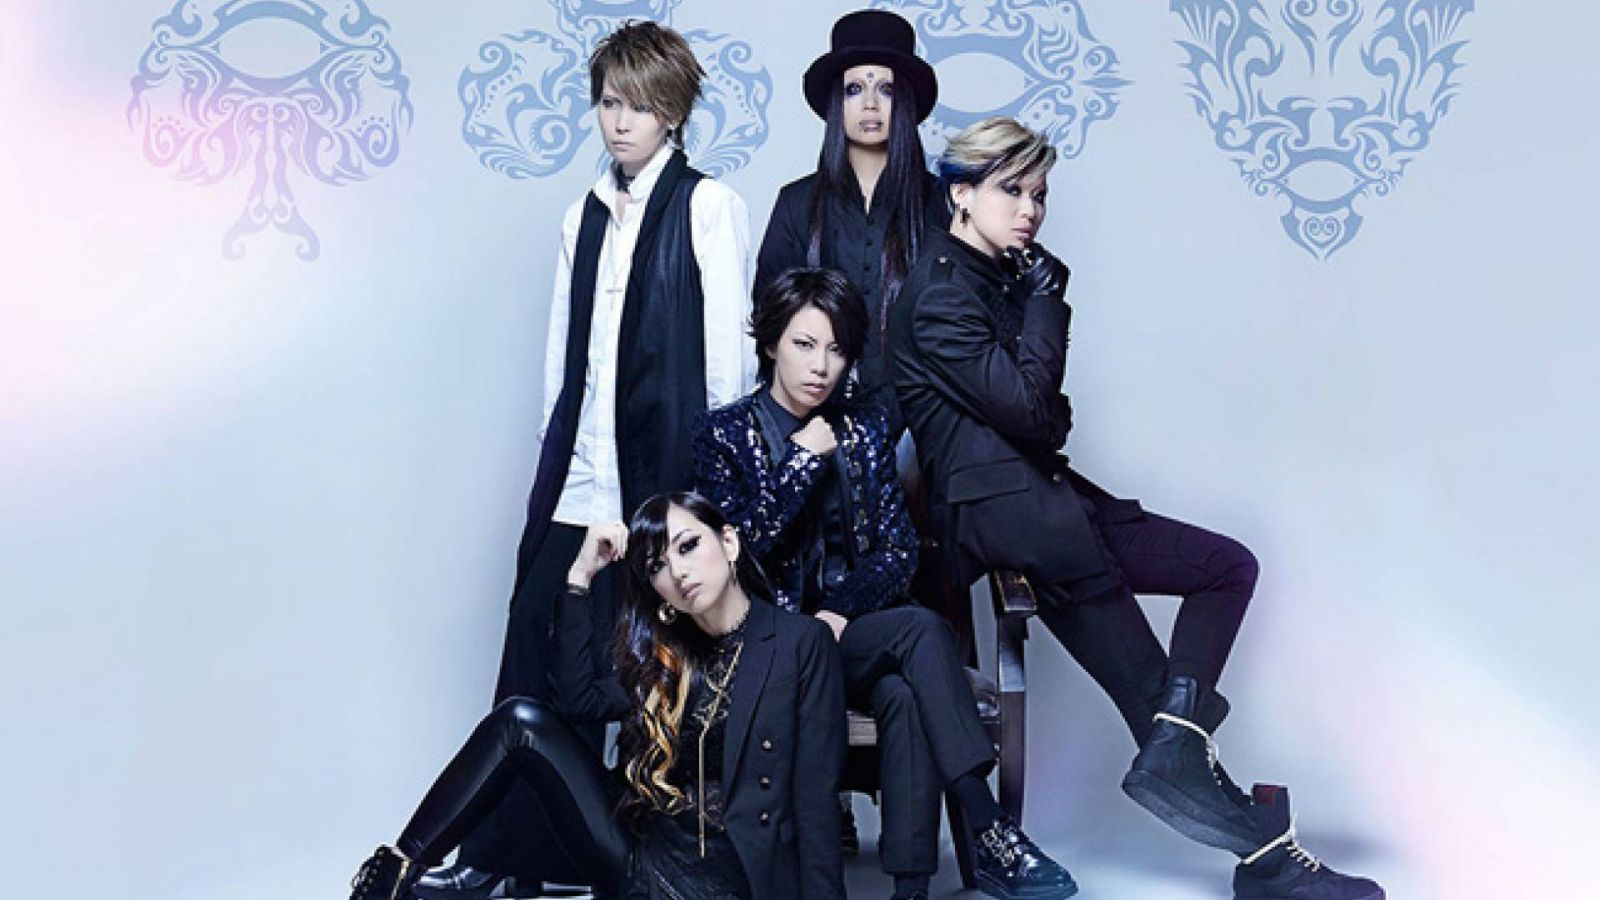 Wywiad z exist†trace © Monster's Inc. All rights reserved.